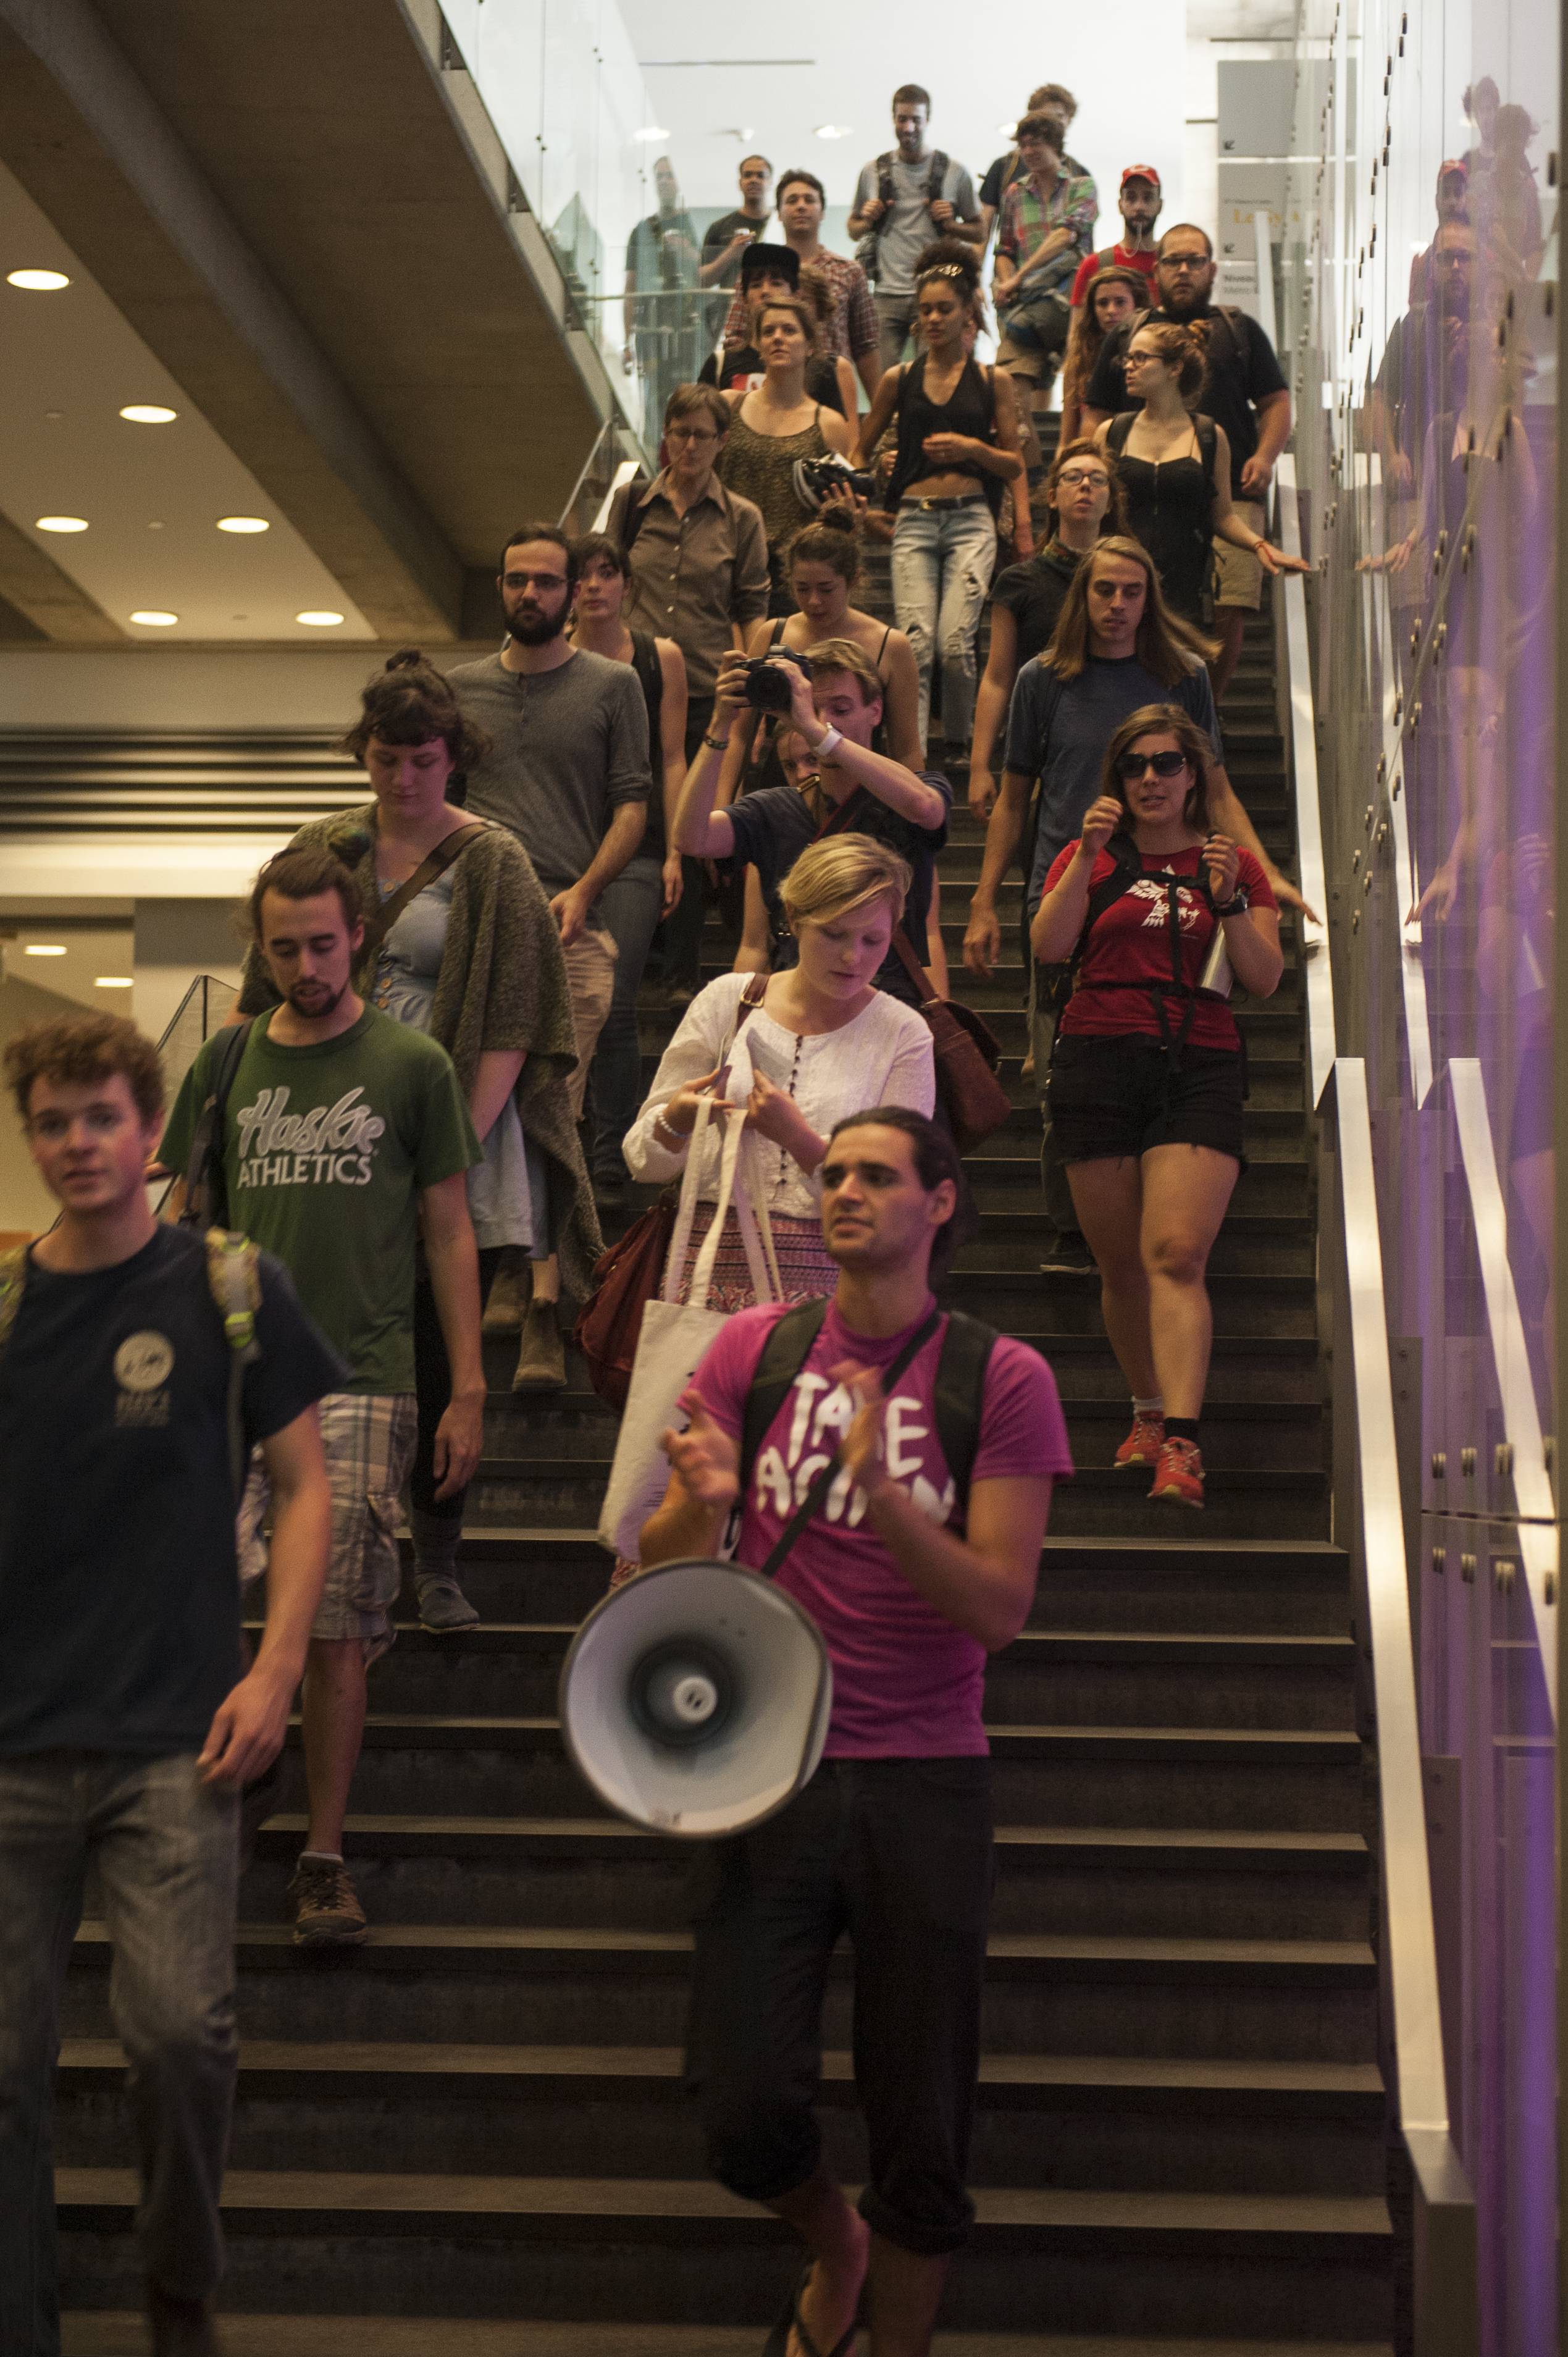 Students at a protest against tribunals in September 2015. Photo by Andrej Ivanov.